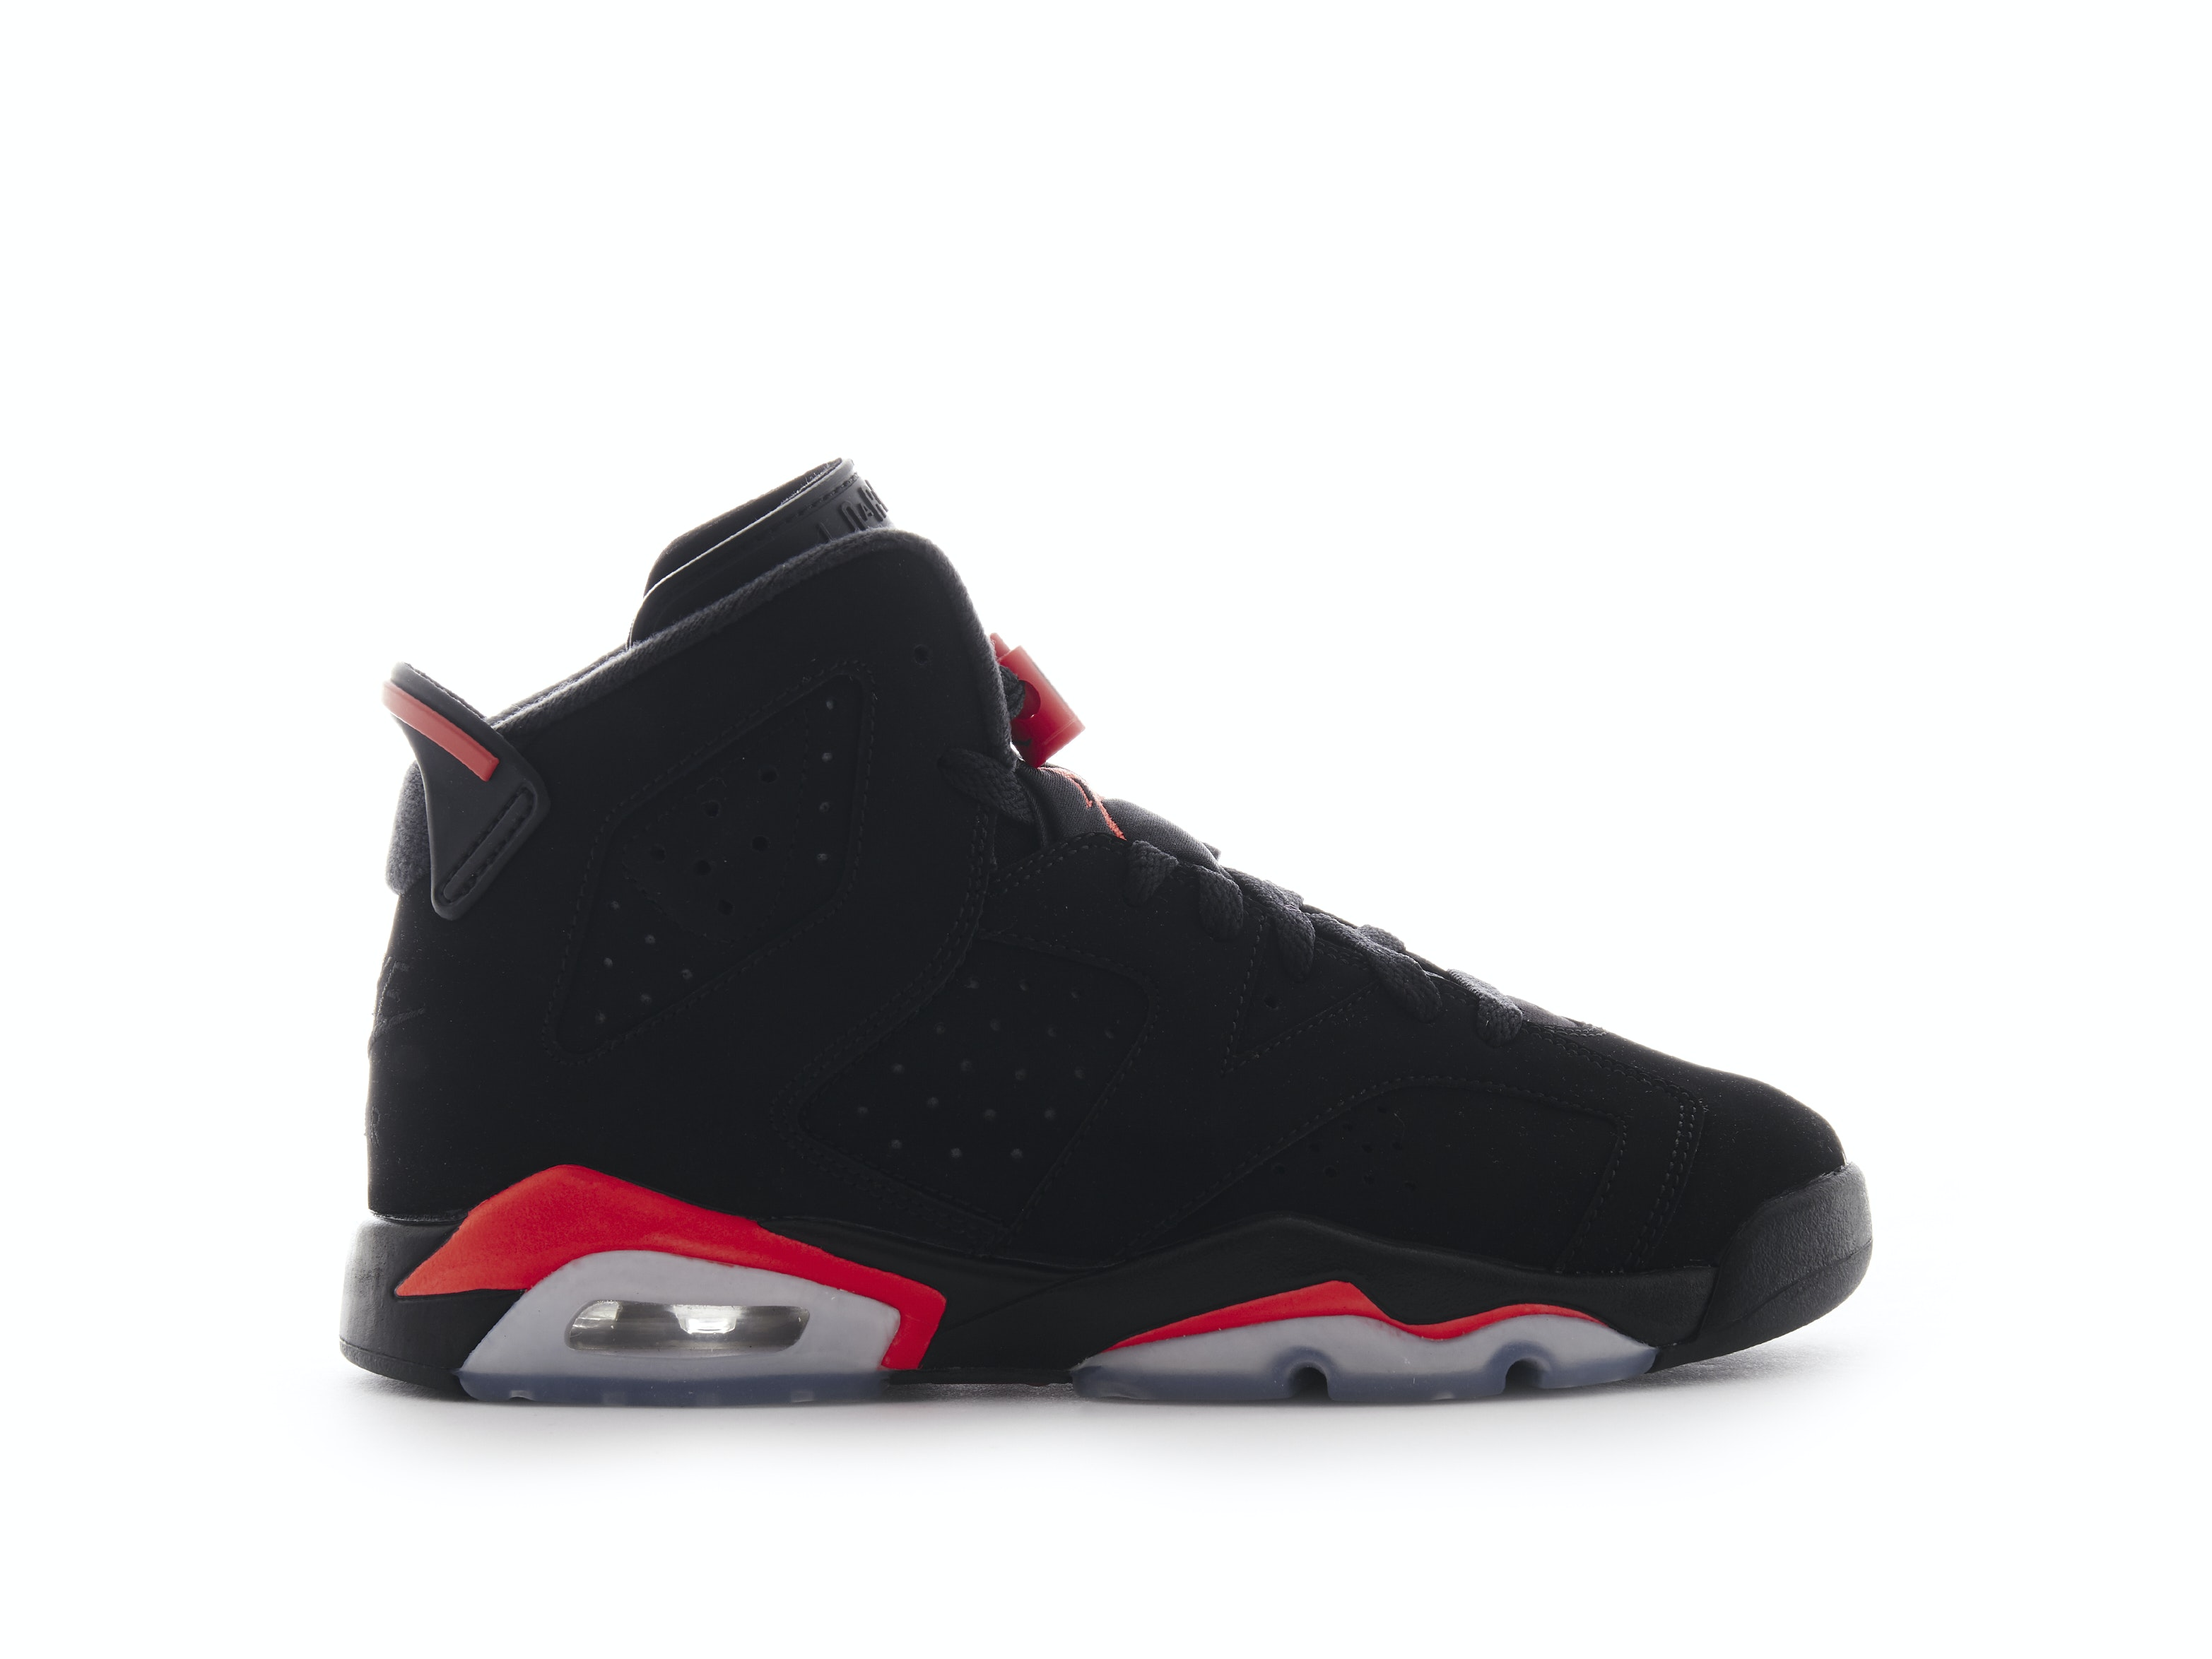 innovative design 01c28 f1dbc Air Jordan 6 Retro GS Infrared 2019